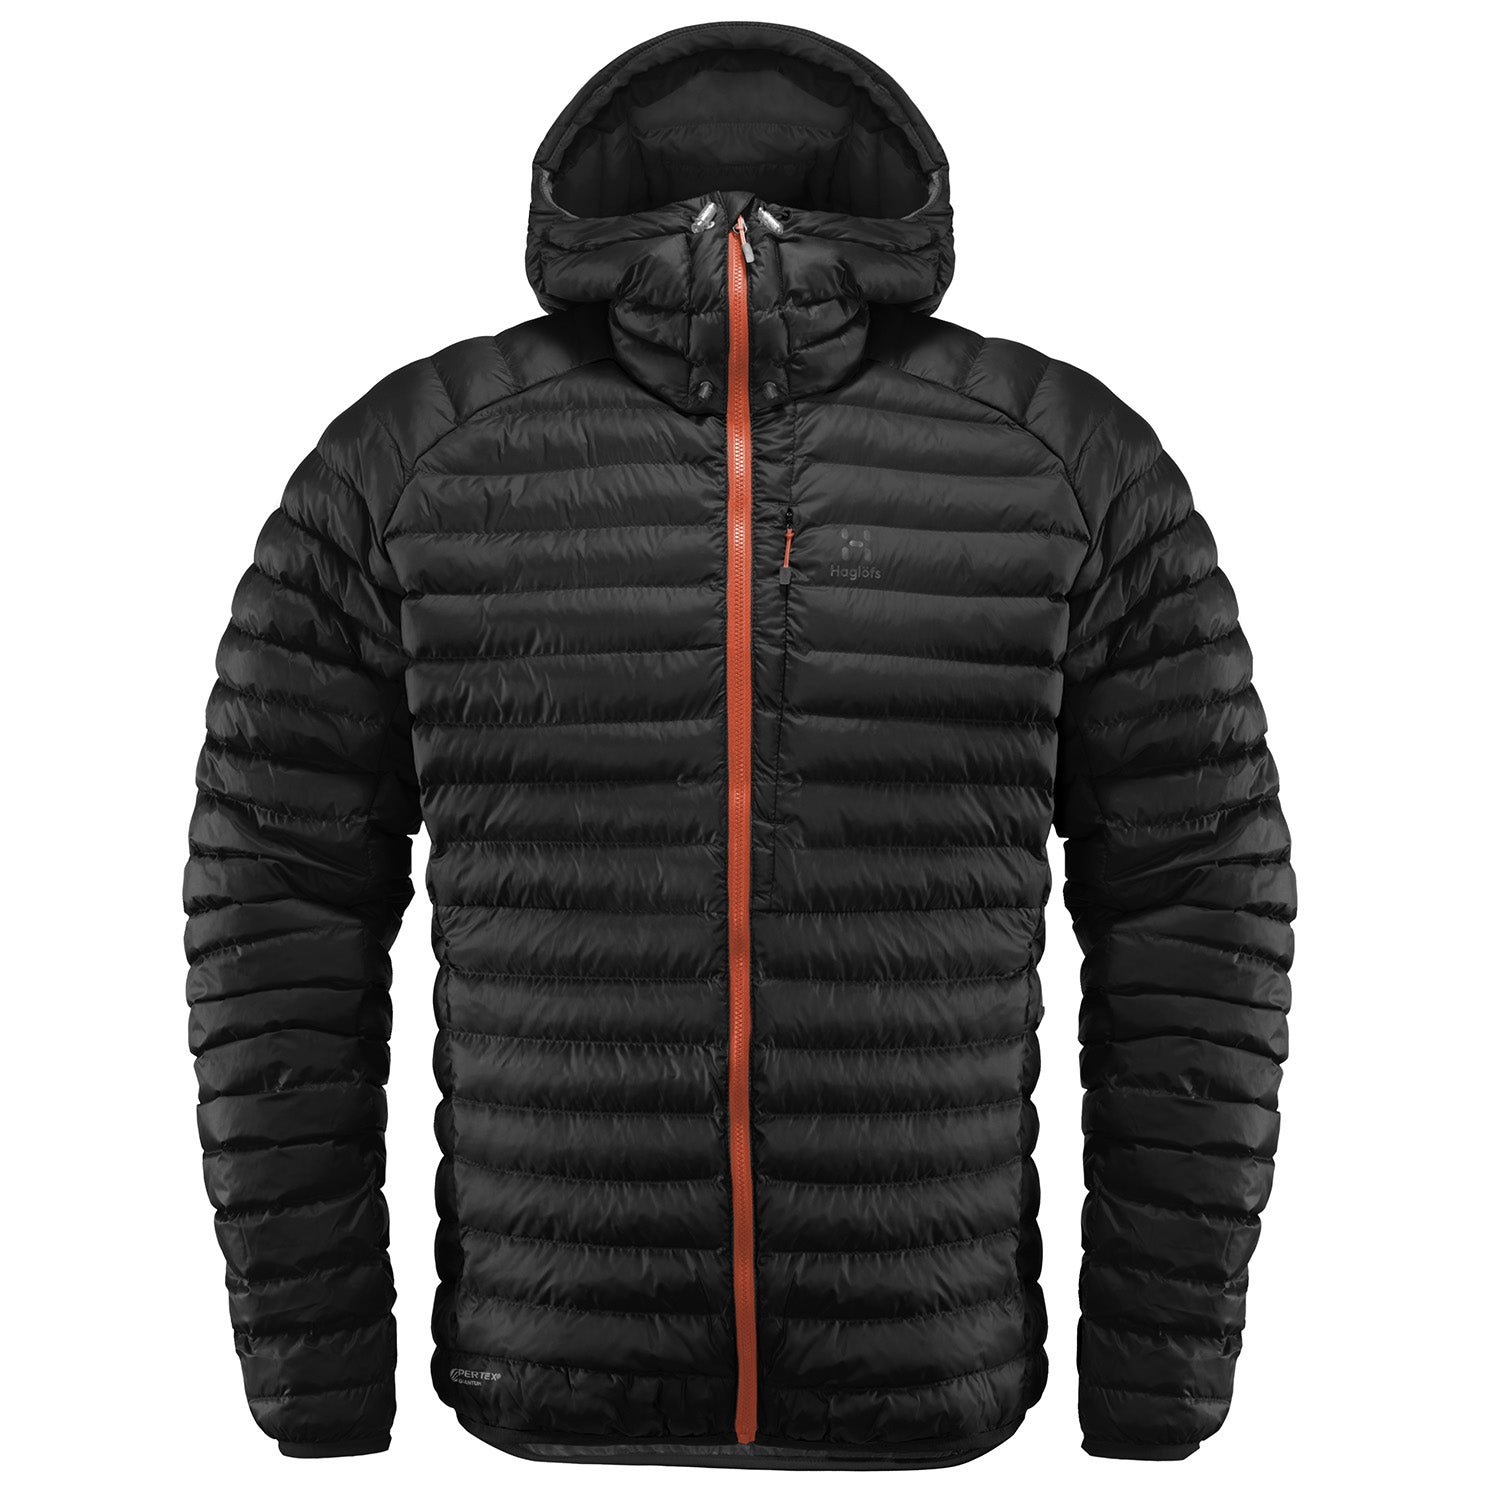 0f9c8b83c67 Haglofs Essens Mimic Hood Men Mens Jacket Down - Magnetite true ...